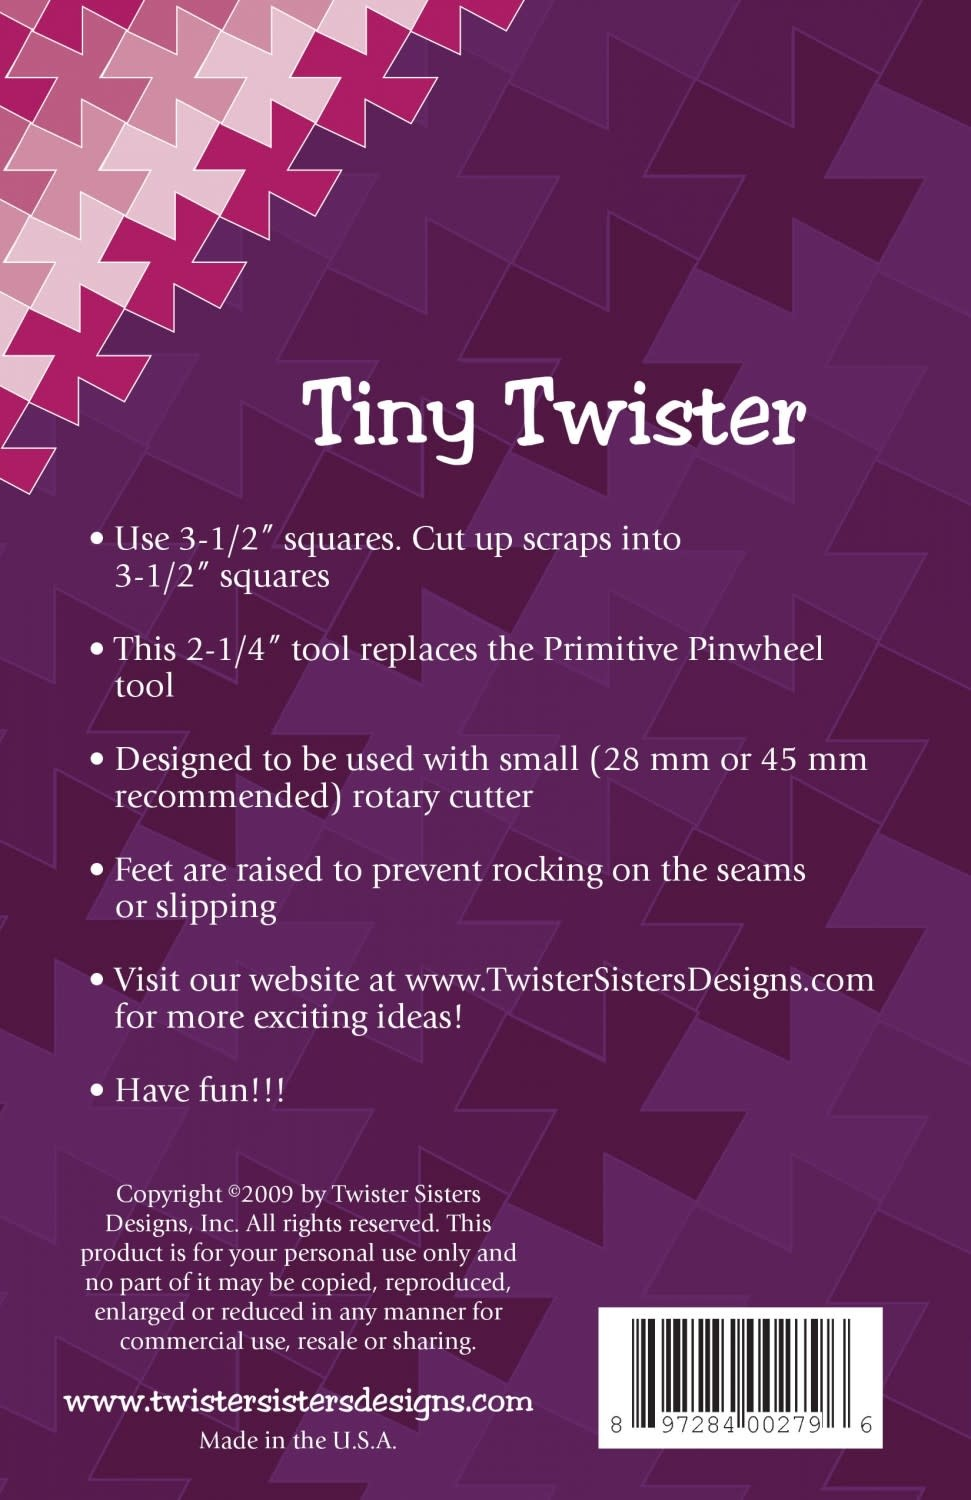 TWISTER SISTERS Tiny Twister Pinwheel Ruler